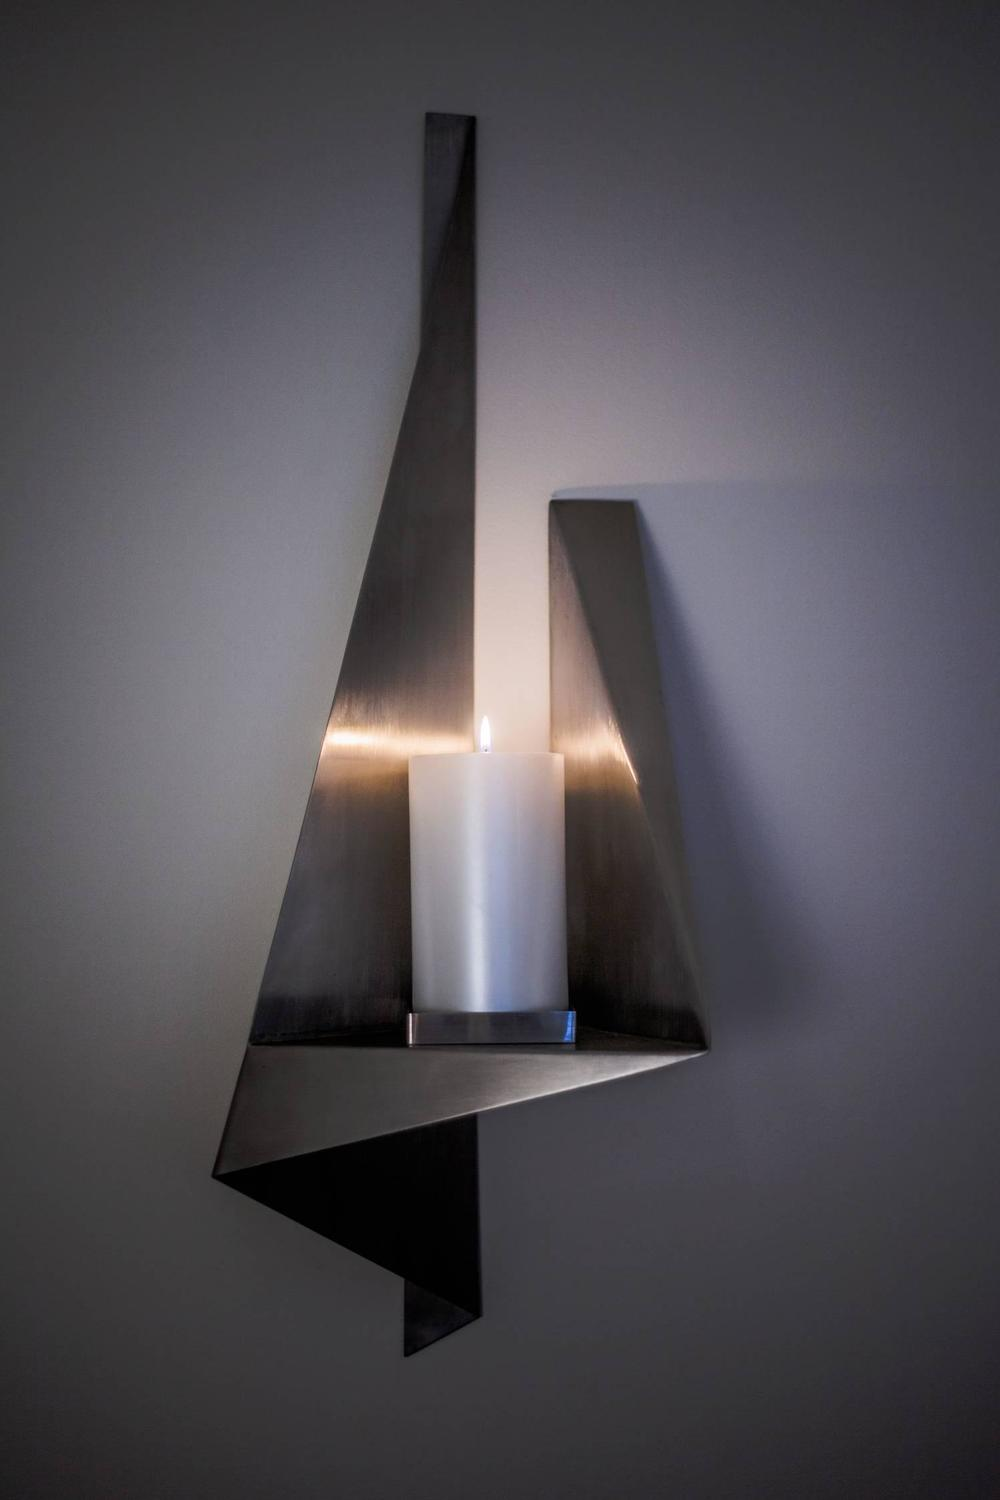 Large Decorative Wall Lights : Large Candle Wall Sconce, Custom Stainless Steel, USA, 1970s For Sale at 1stdibs